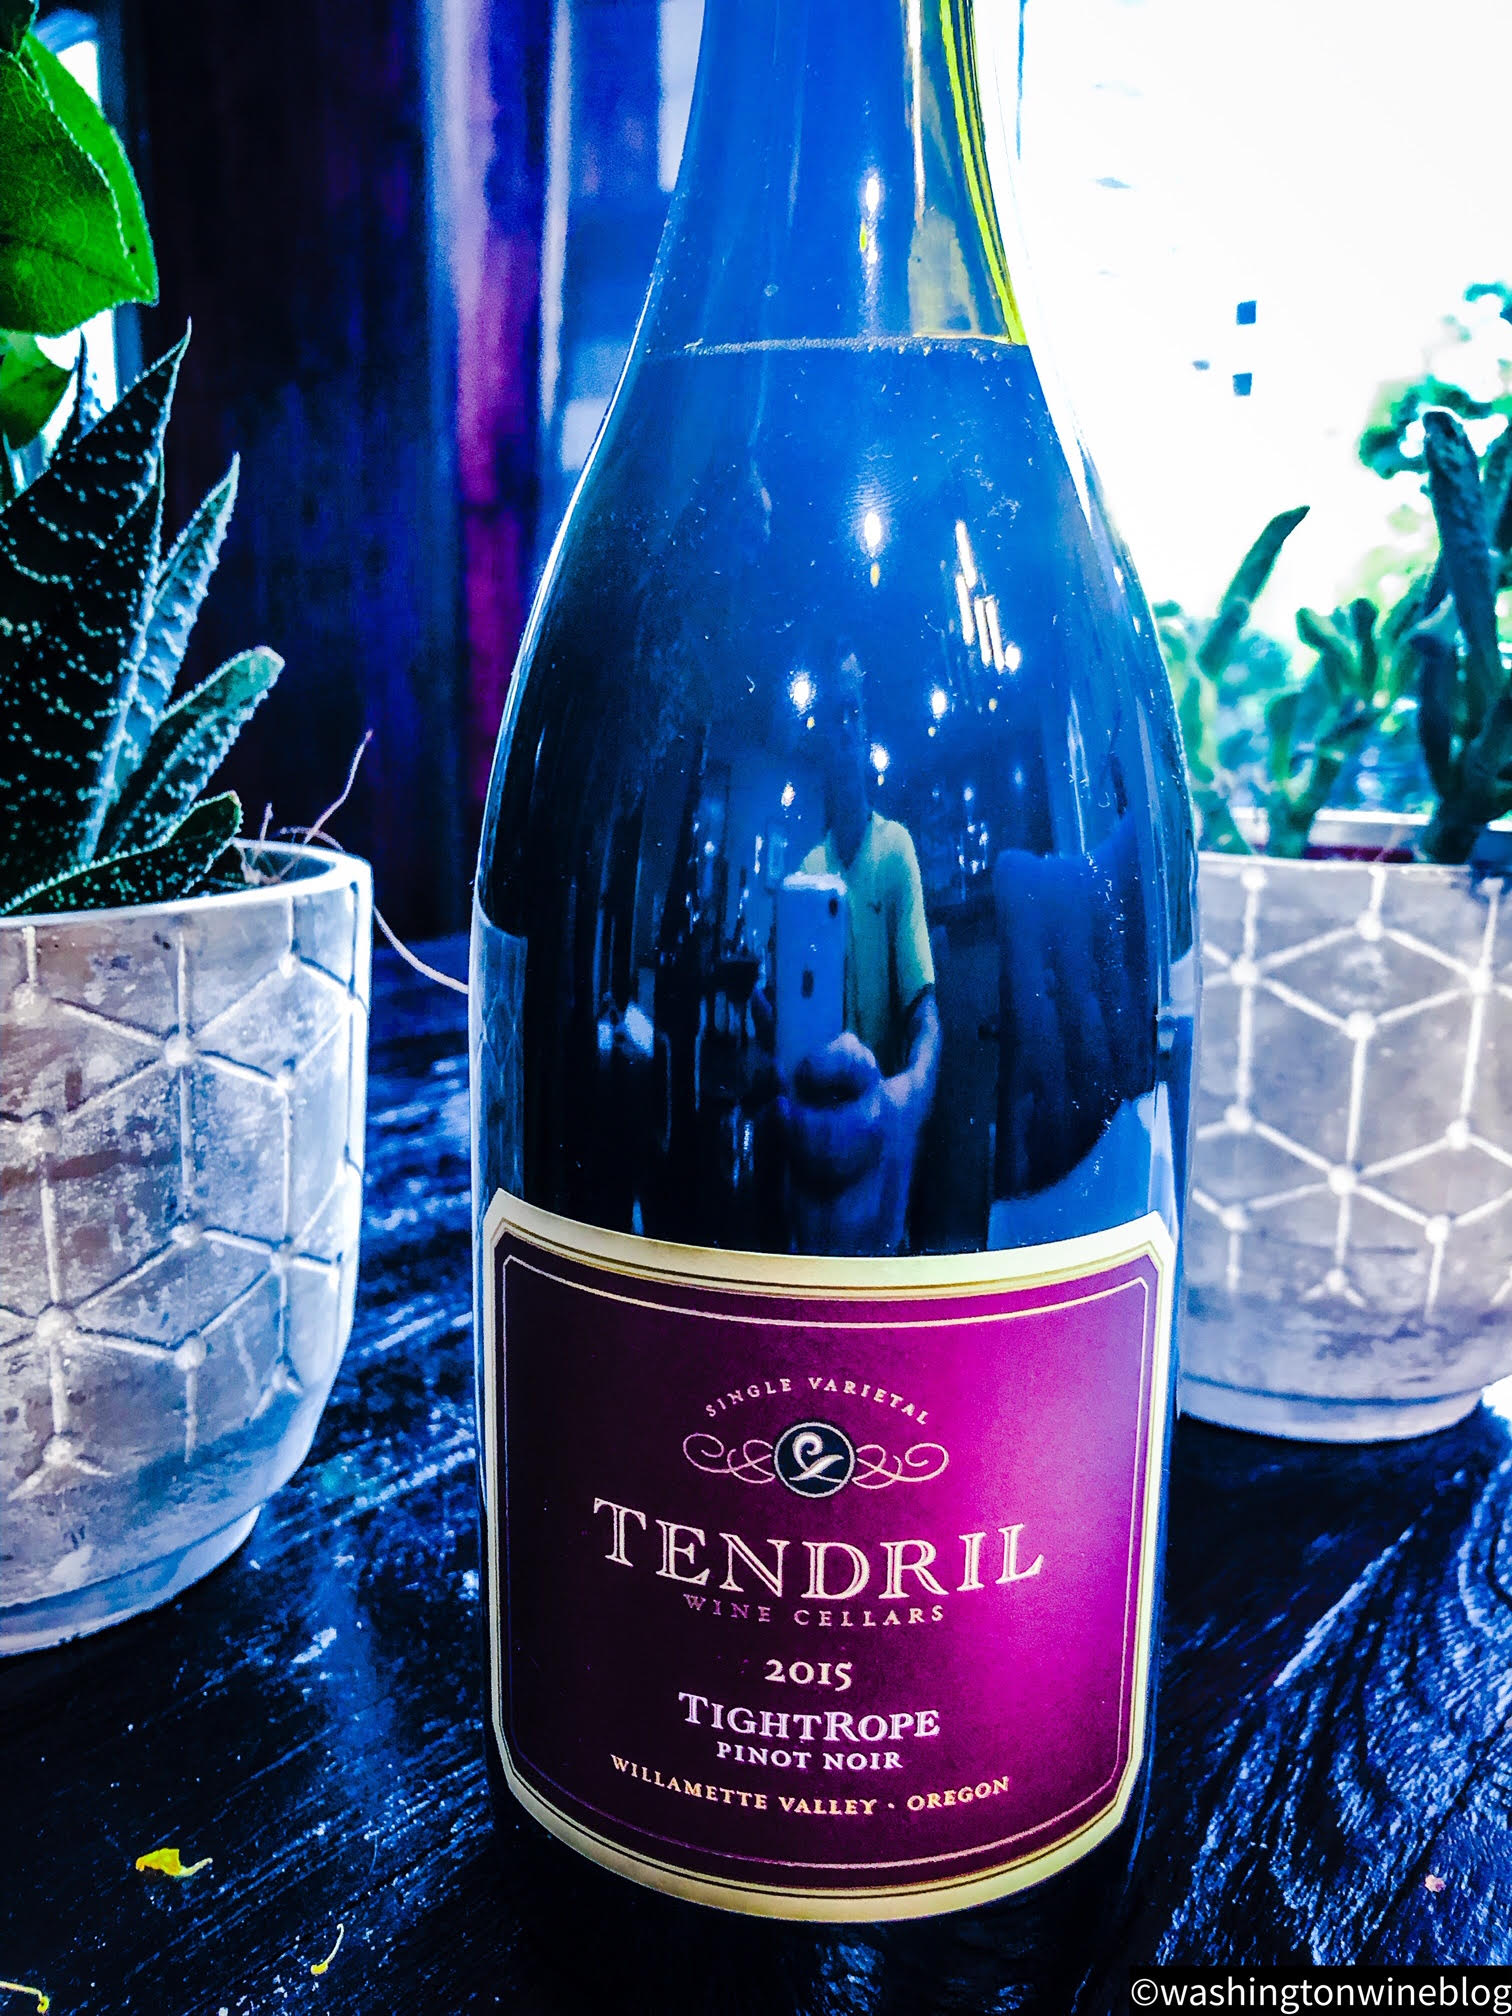 Tendril 2015 Tightrope Pinot Noir.jpg